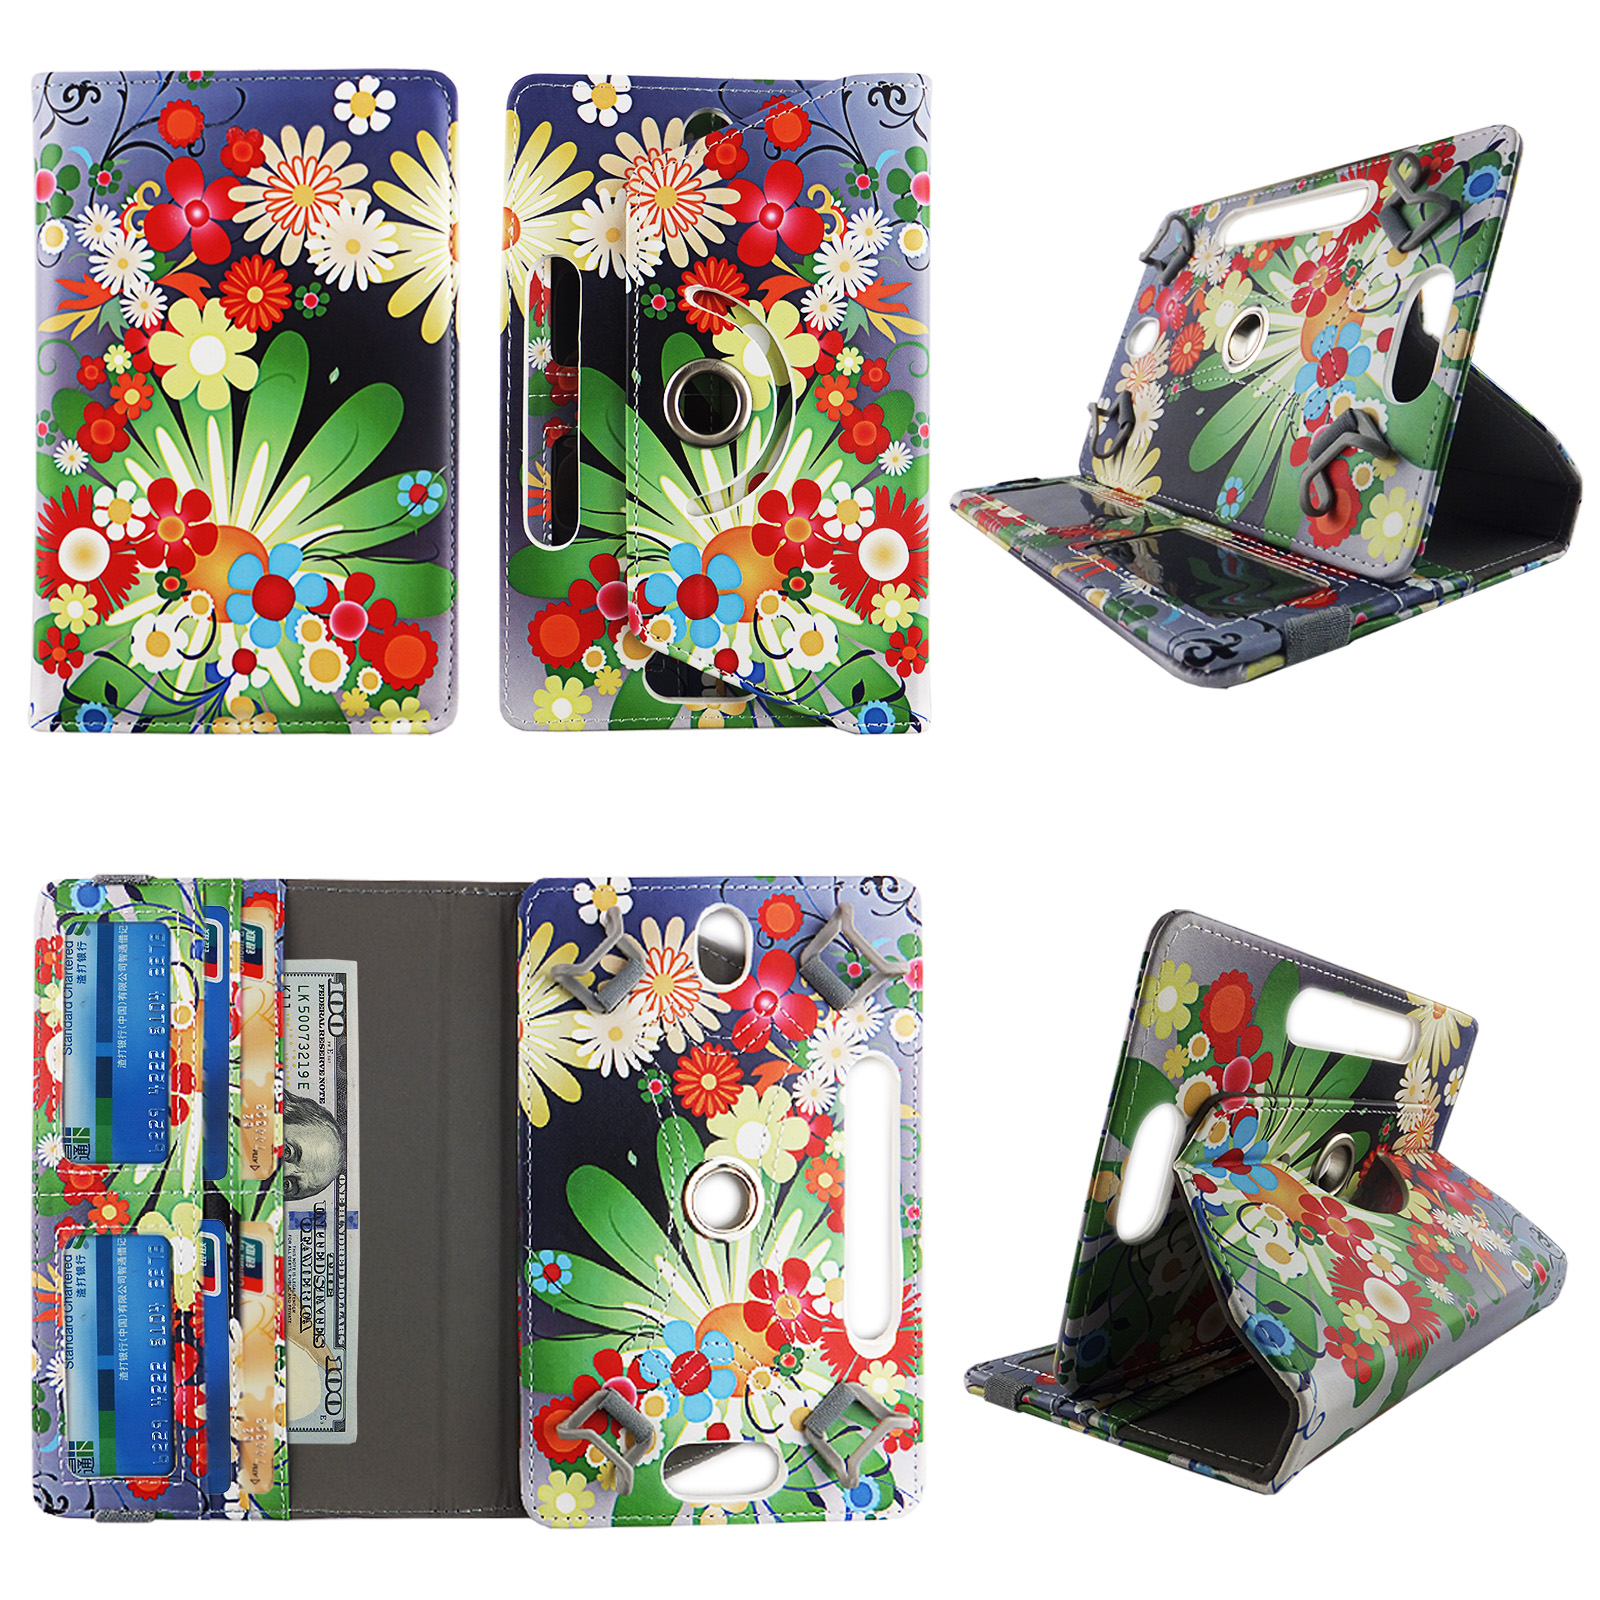 "Multi Flower tablet case 10 inch for Acer Iconia 10.1 10"" 10inch android tablet cases 360 rotating slim folio stand protector pu leather cover travel e-reader cash slots"